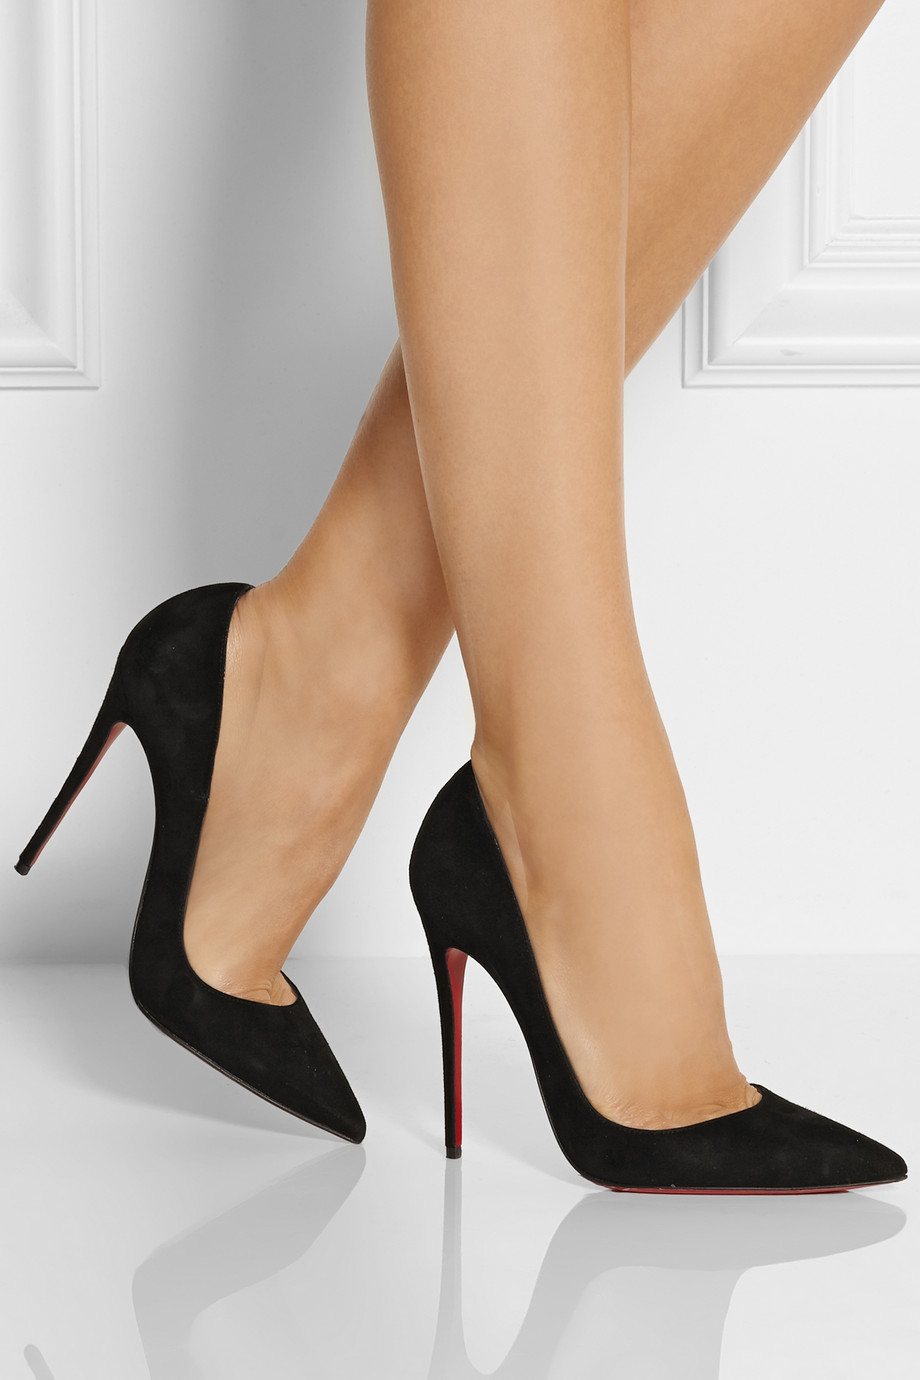 Christian Louboutin So Kate 120 Suede Pumps In Black Lyst